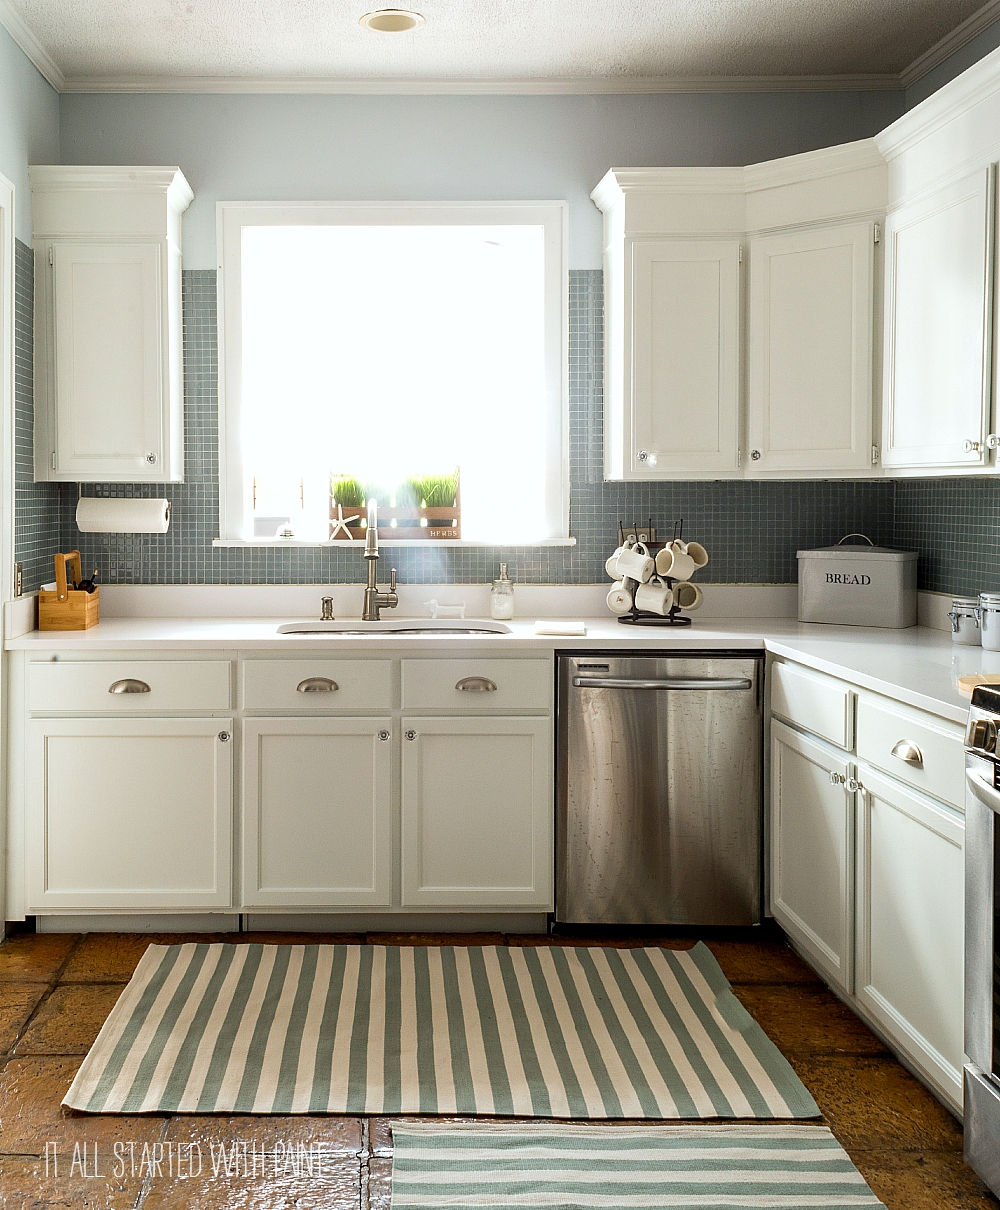 Used White Kitchen Cabinets: How To Paint Builder Grade Cabinets